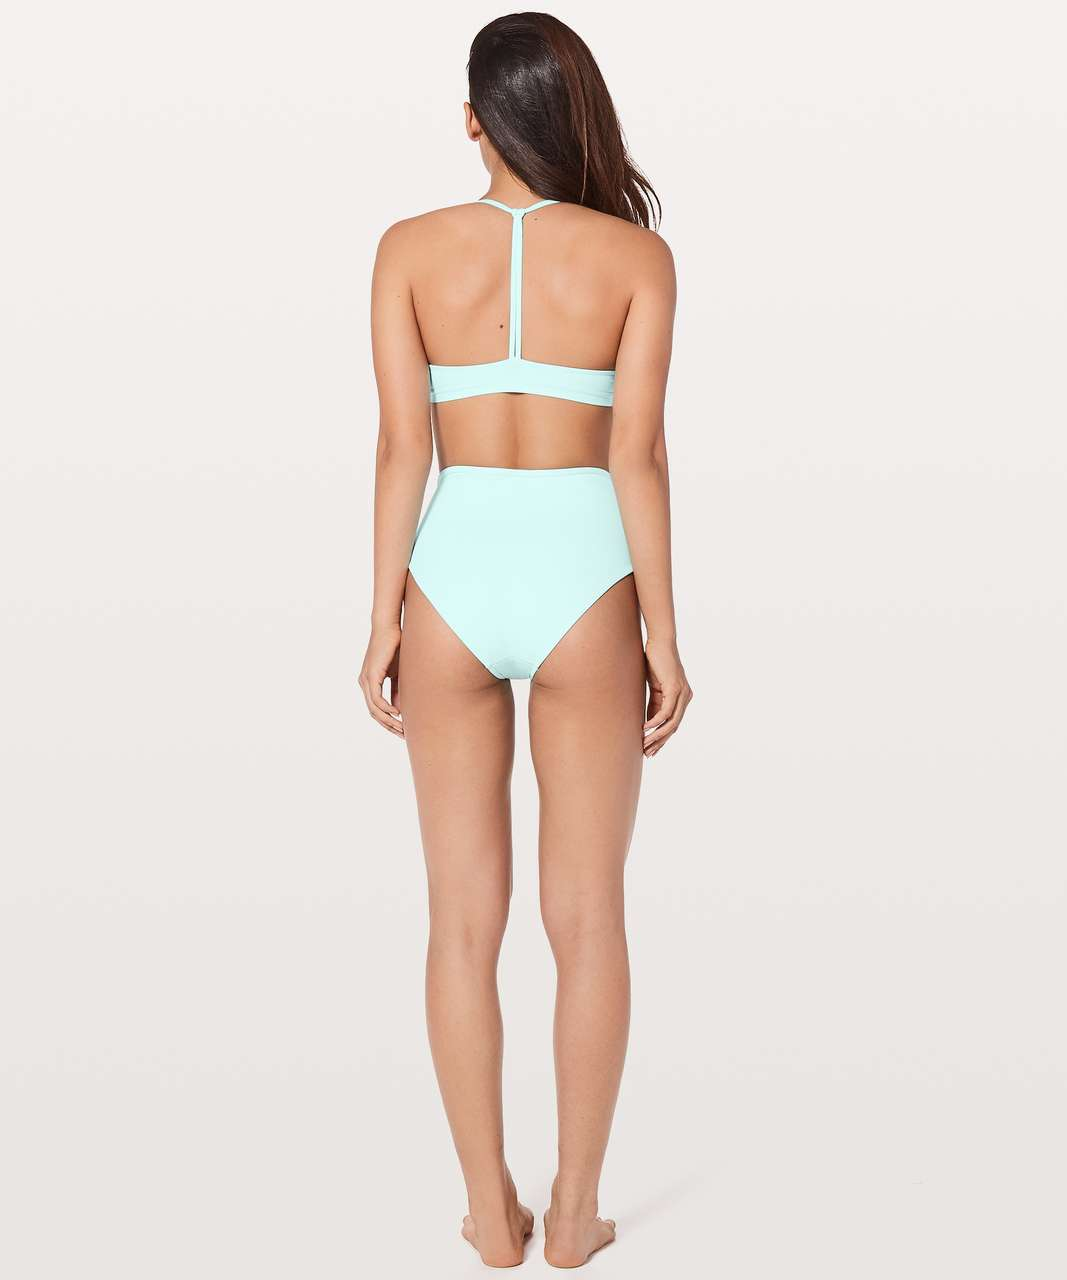 Lululemon Deep Sea High Waist Bottom - Aquamarine